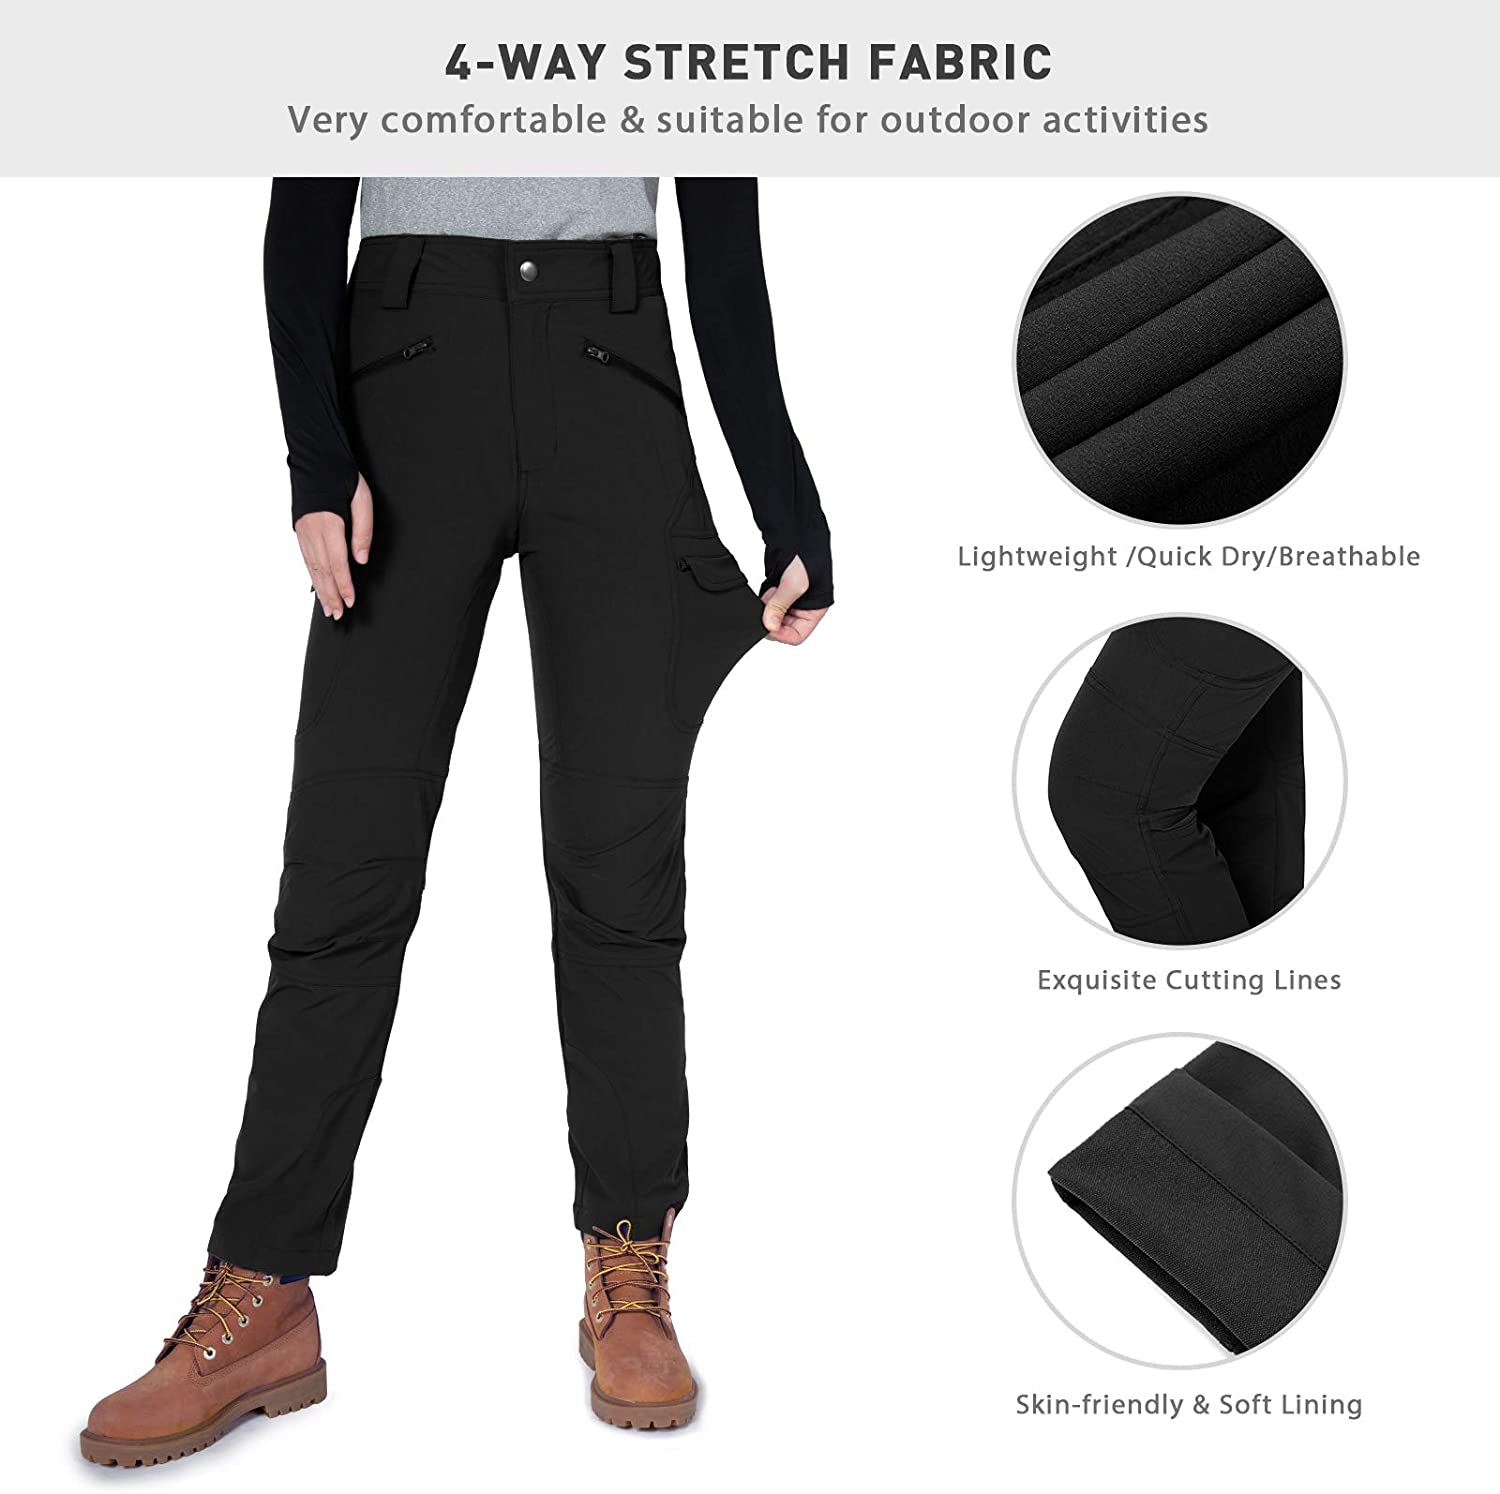 Gouxry Womens-Hiking-Pants-Lightweight Quick Dry with 4 Zippered Pockets Travel Fishing Camping Outdoor Pants for Women